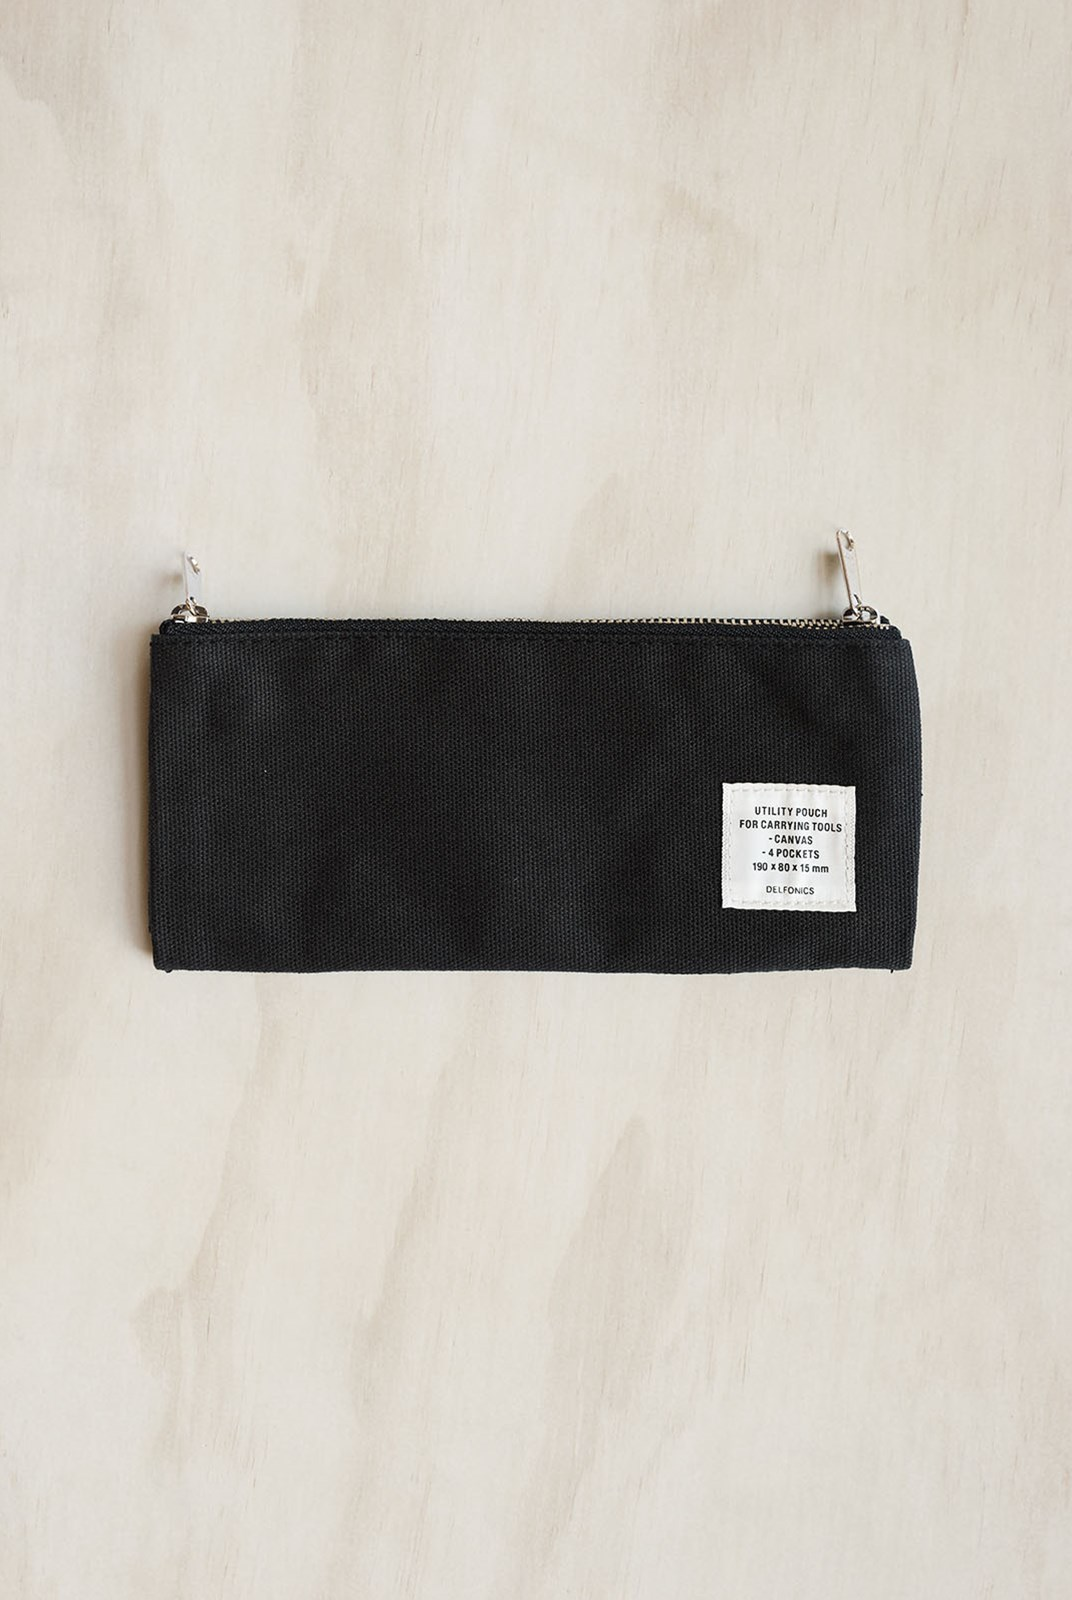 Delfonics - Utility Pouch Pencil Case - Black